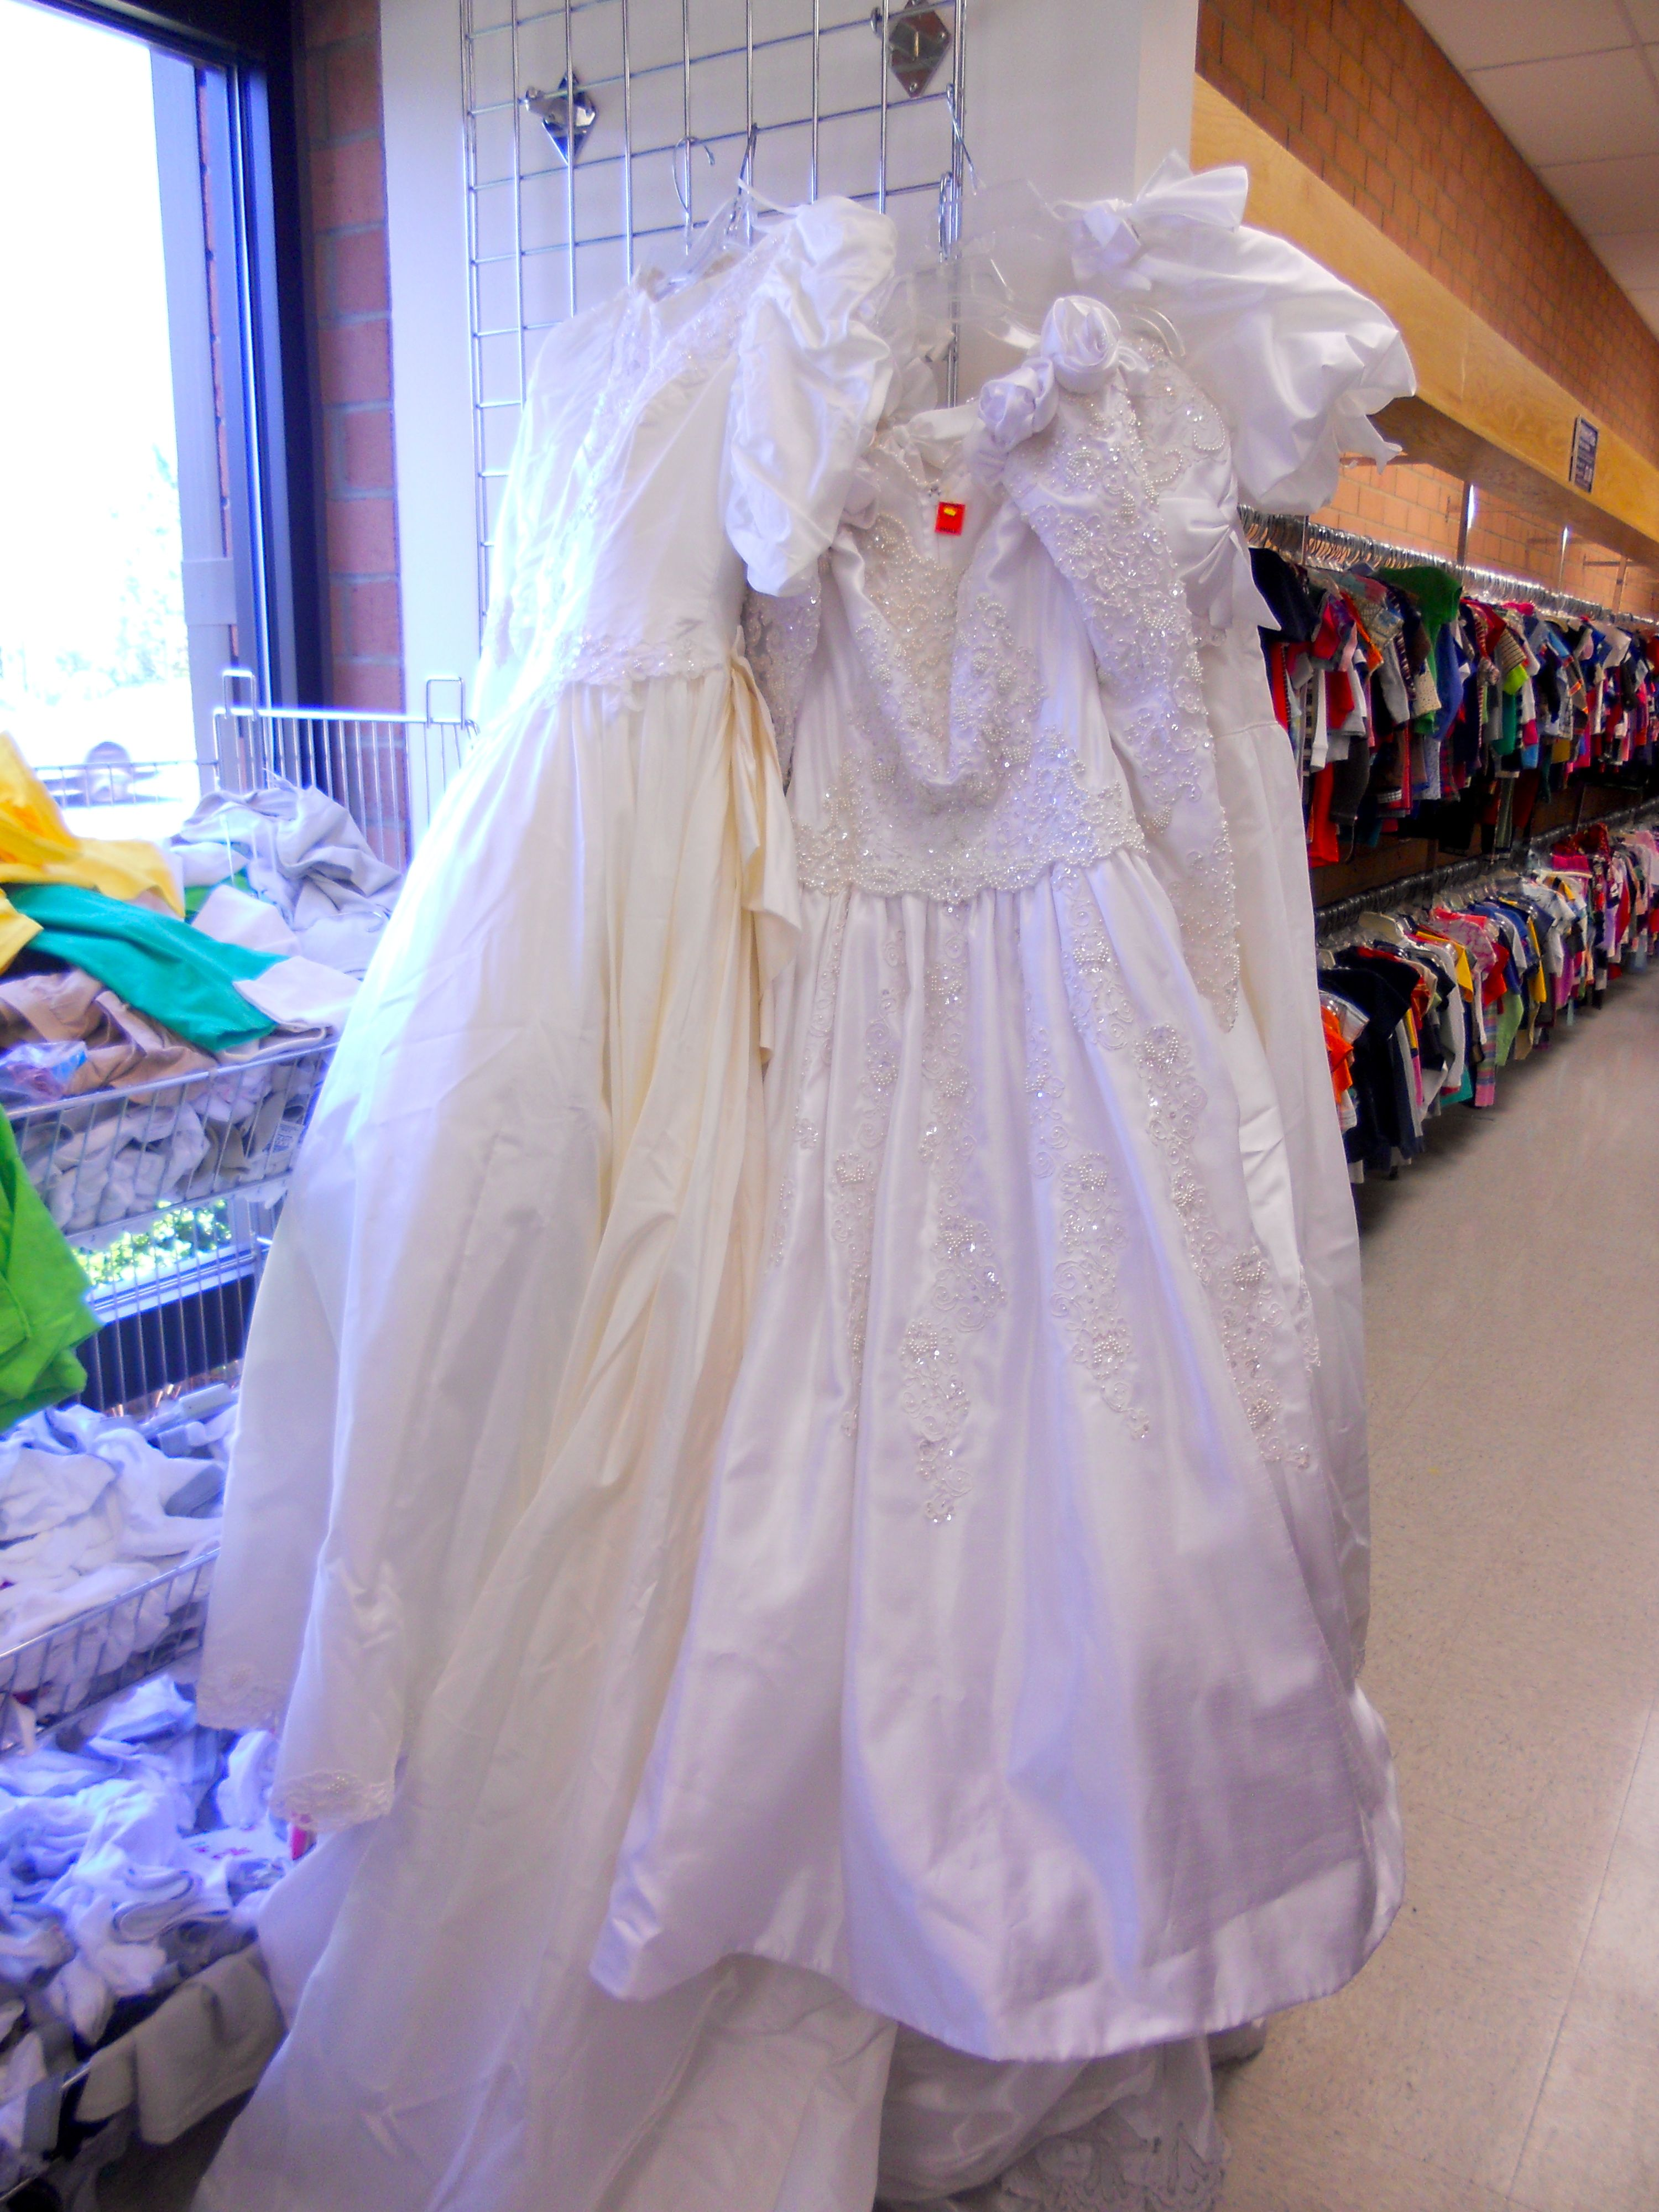 Guest post finding the unexpected at goodwill wow goodwill for Donate wedding dress goodwill